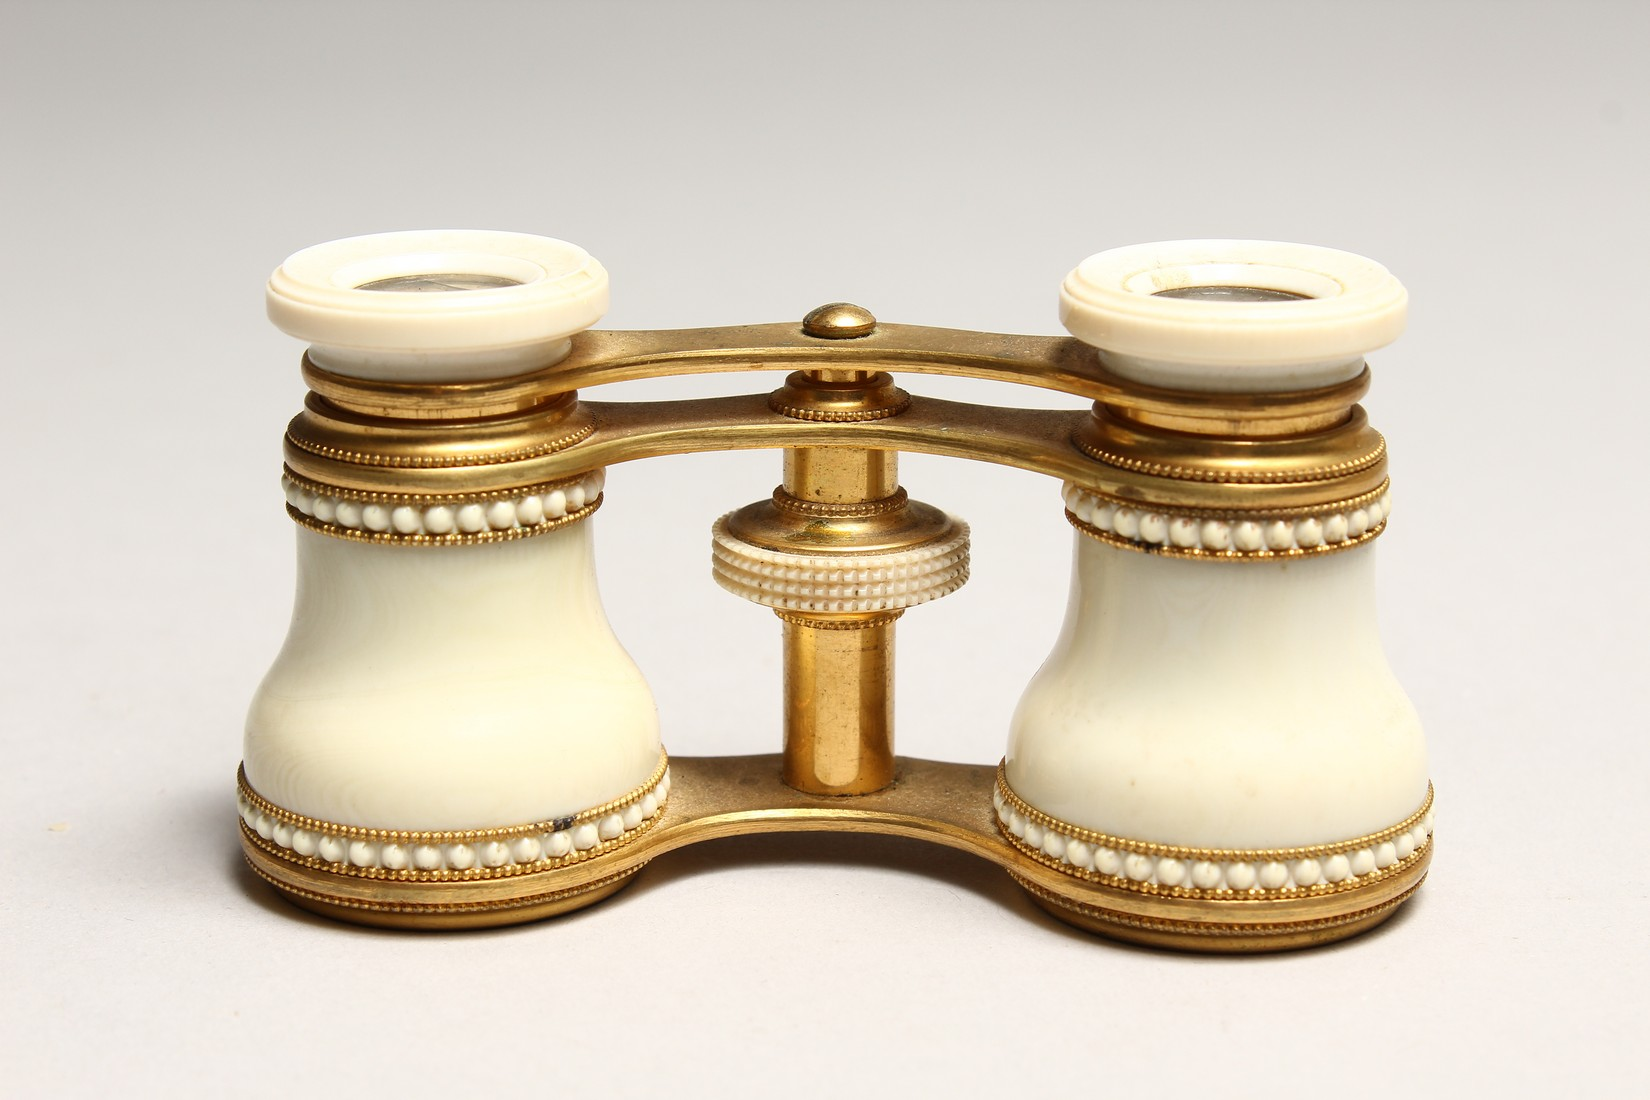 A PAIR OF IVORY AND GILT OPERA GLASSES 4.6ins long. - Image 2 of 6